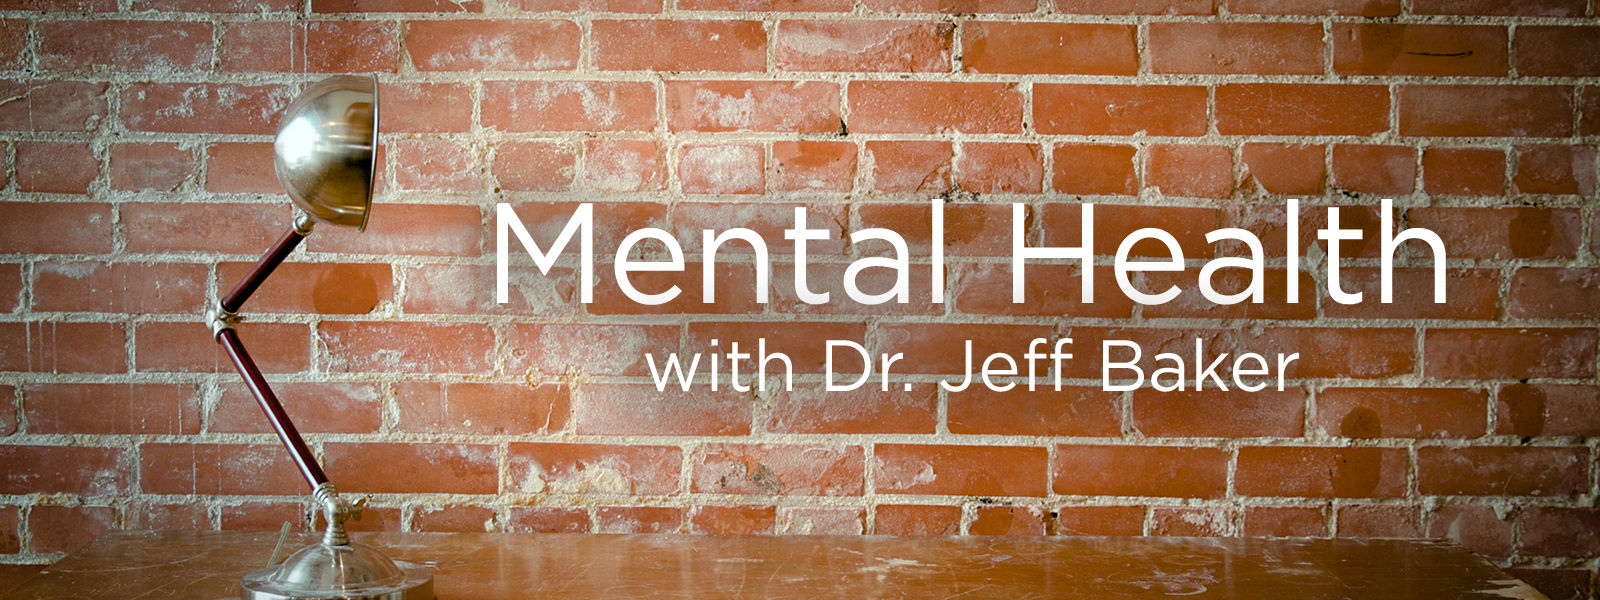 Mental Health with Dr. Jeff Baker